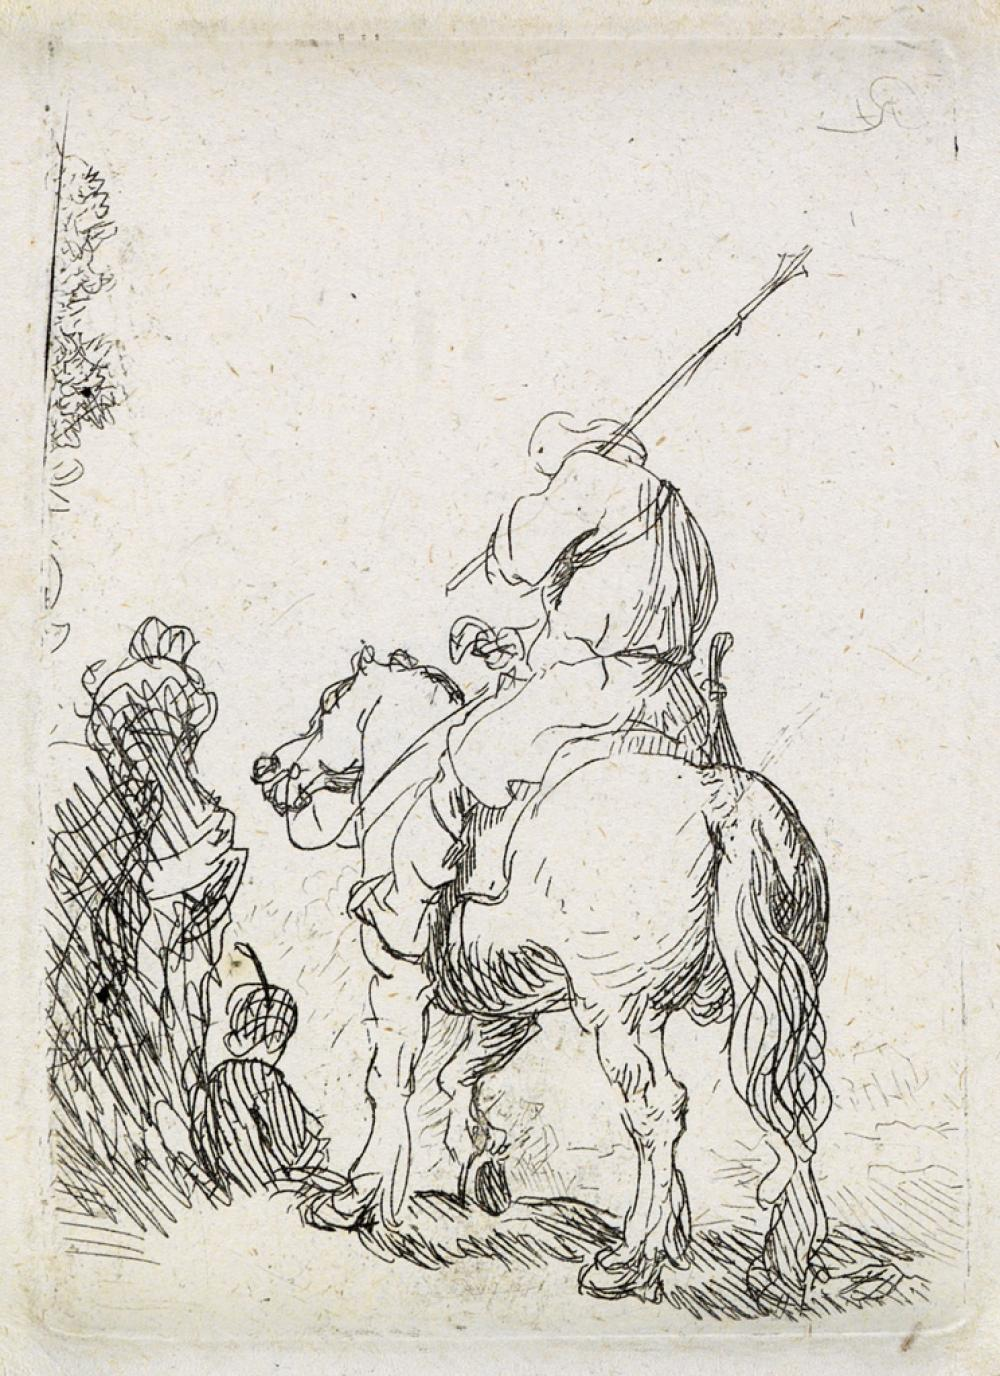 REMBRANDT VAN RIJN The Turbaned Soldier on Horseback.